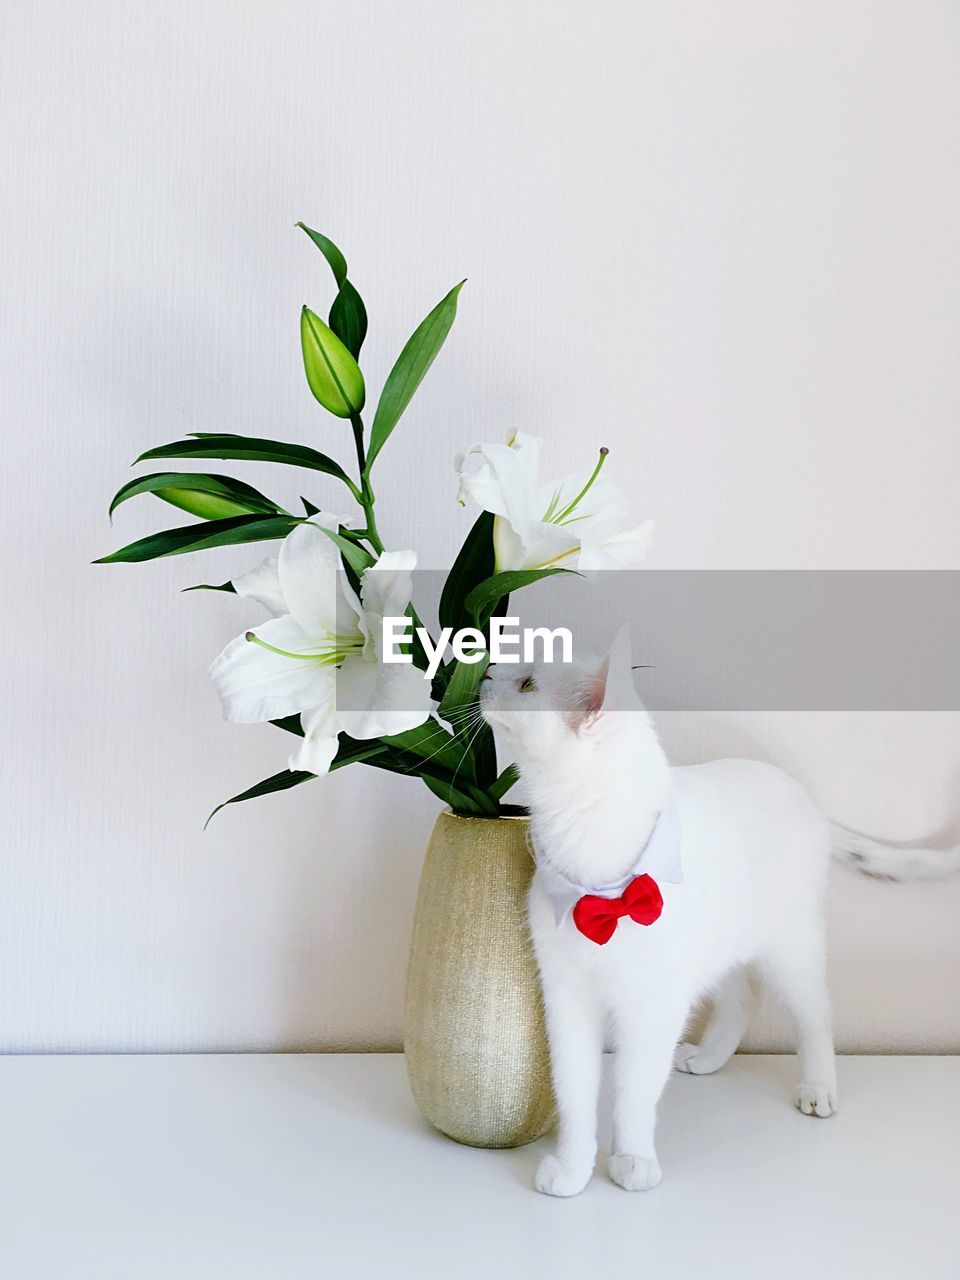 mammal, domestic animals, pets, plant, domestic, flower, animal themes, flowering plant, white color, one animal, animal, indoors, vase, vulnerability, fragility, beauty in nature, no people, nature, cat, vertebrate, domestic cat, flower head, flower arrangement